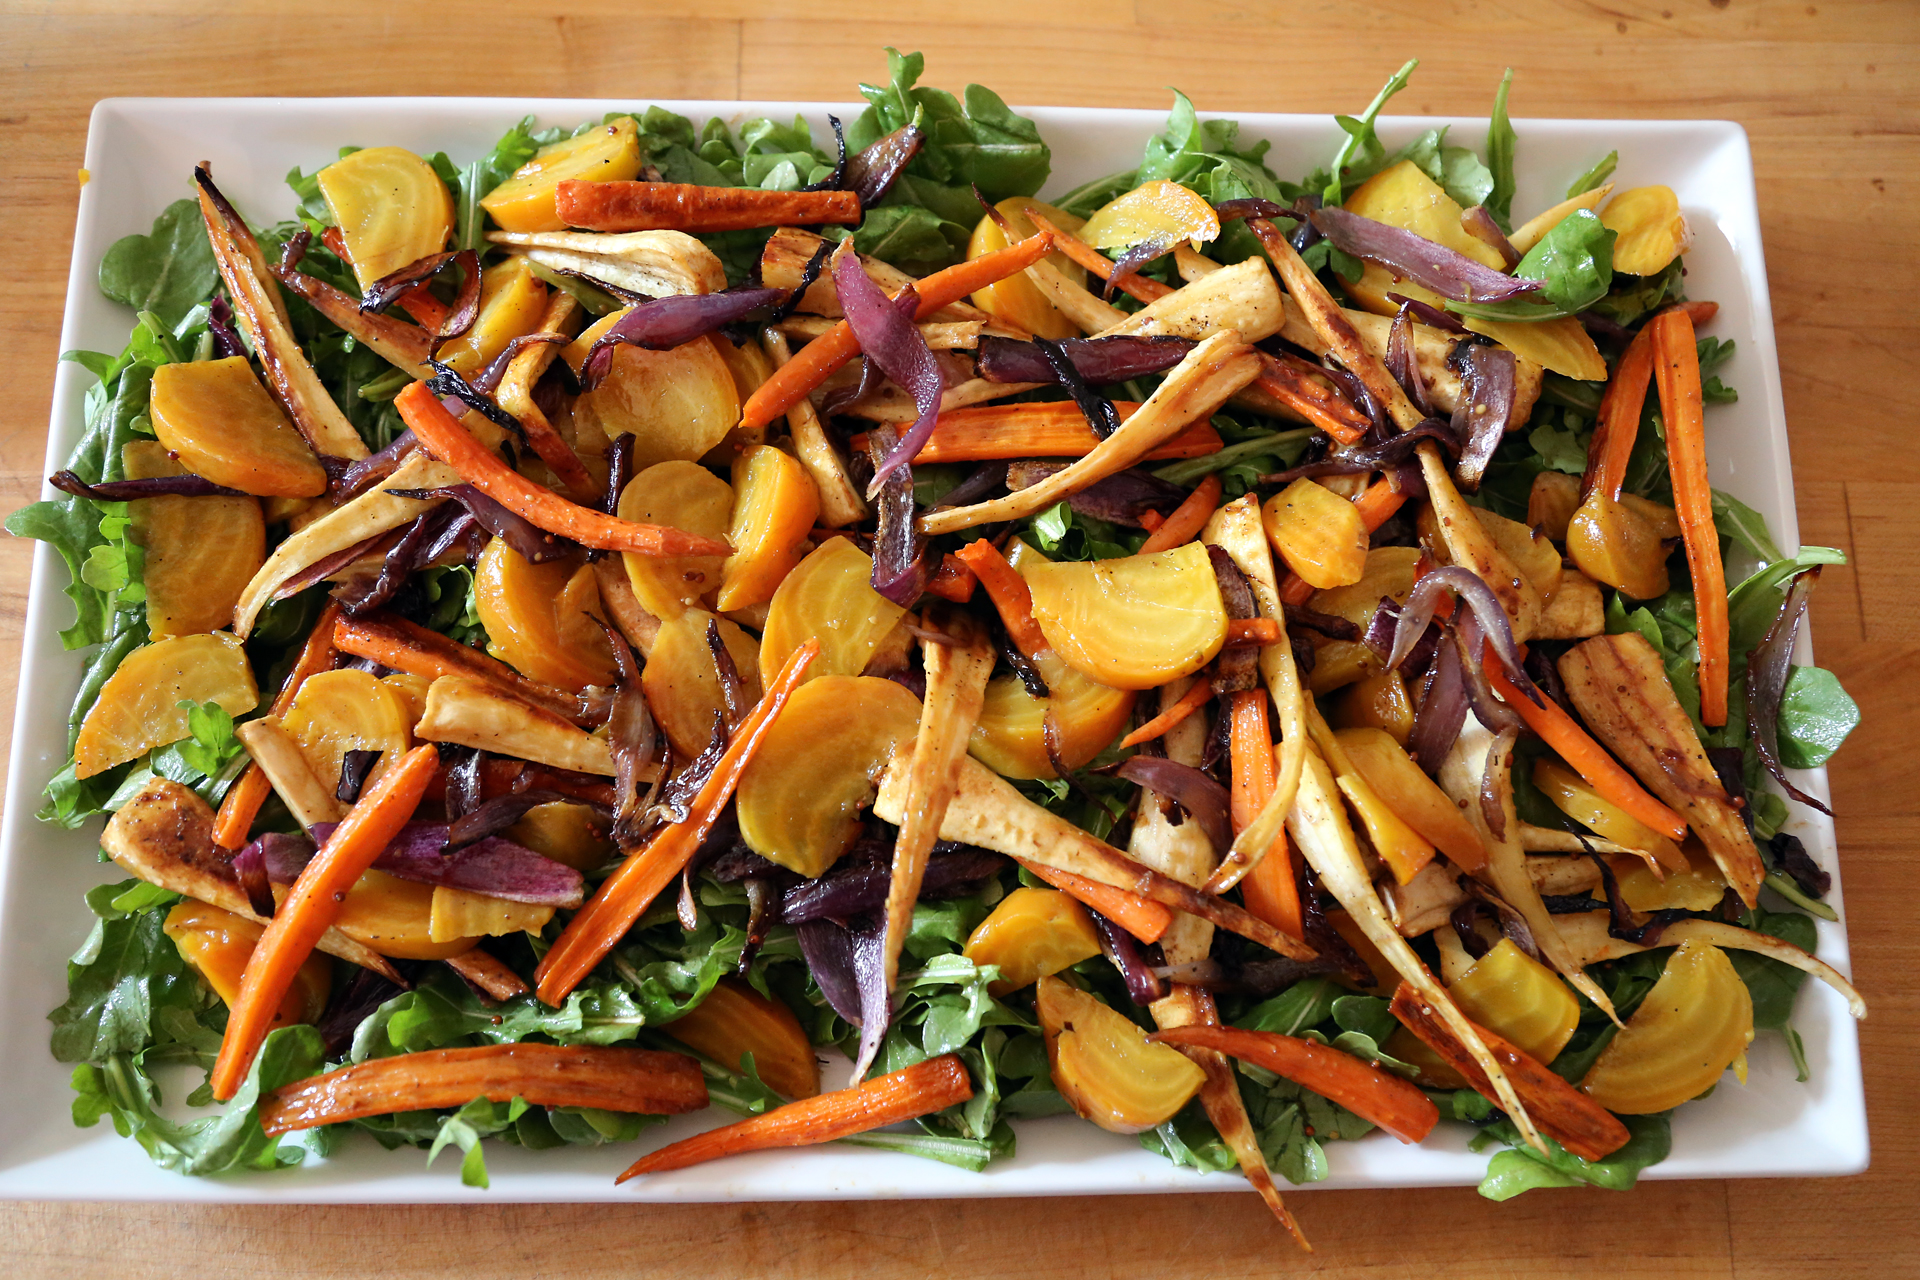 Top the arugula with the roasted vegetables.